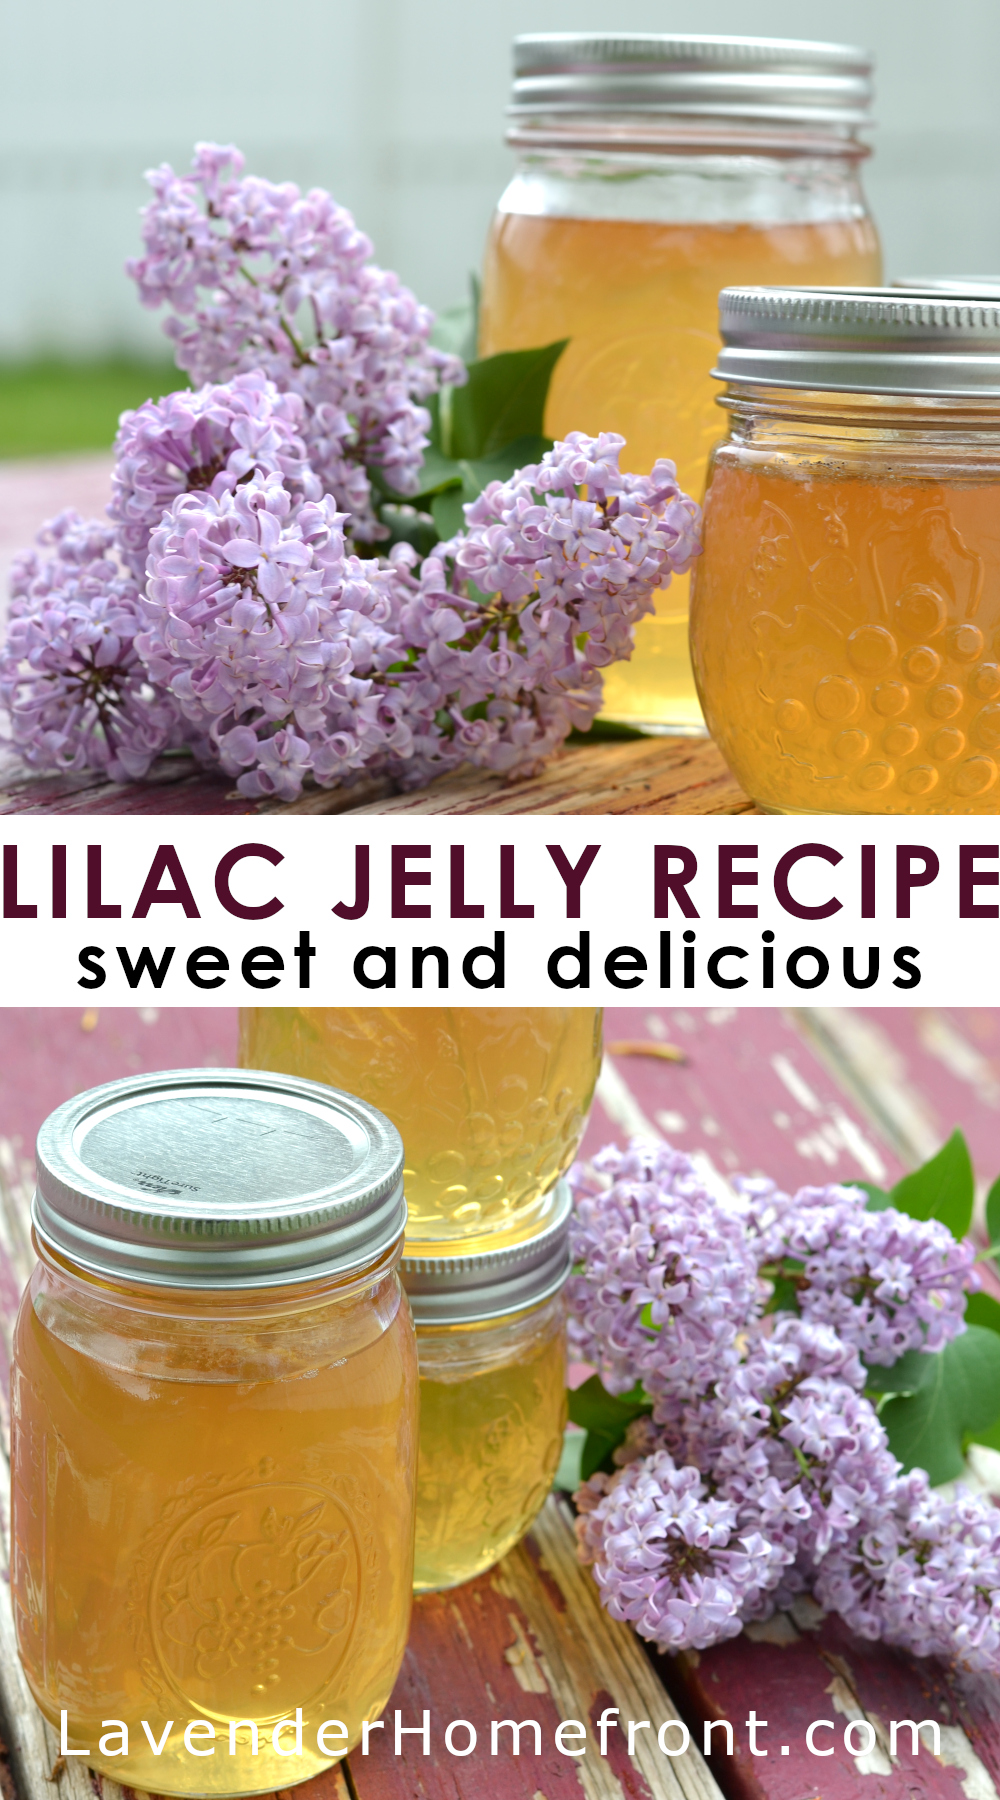 Homemade lilac jelly recipe pinnable image with text overlay.